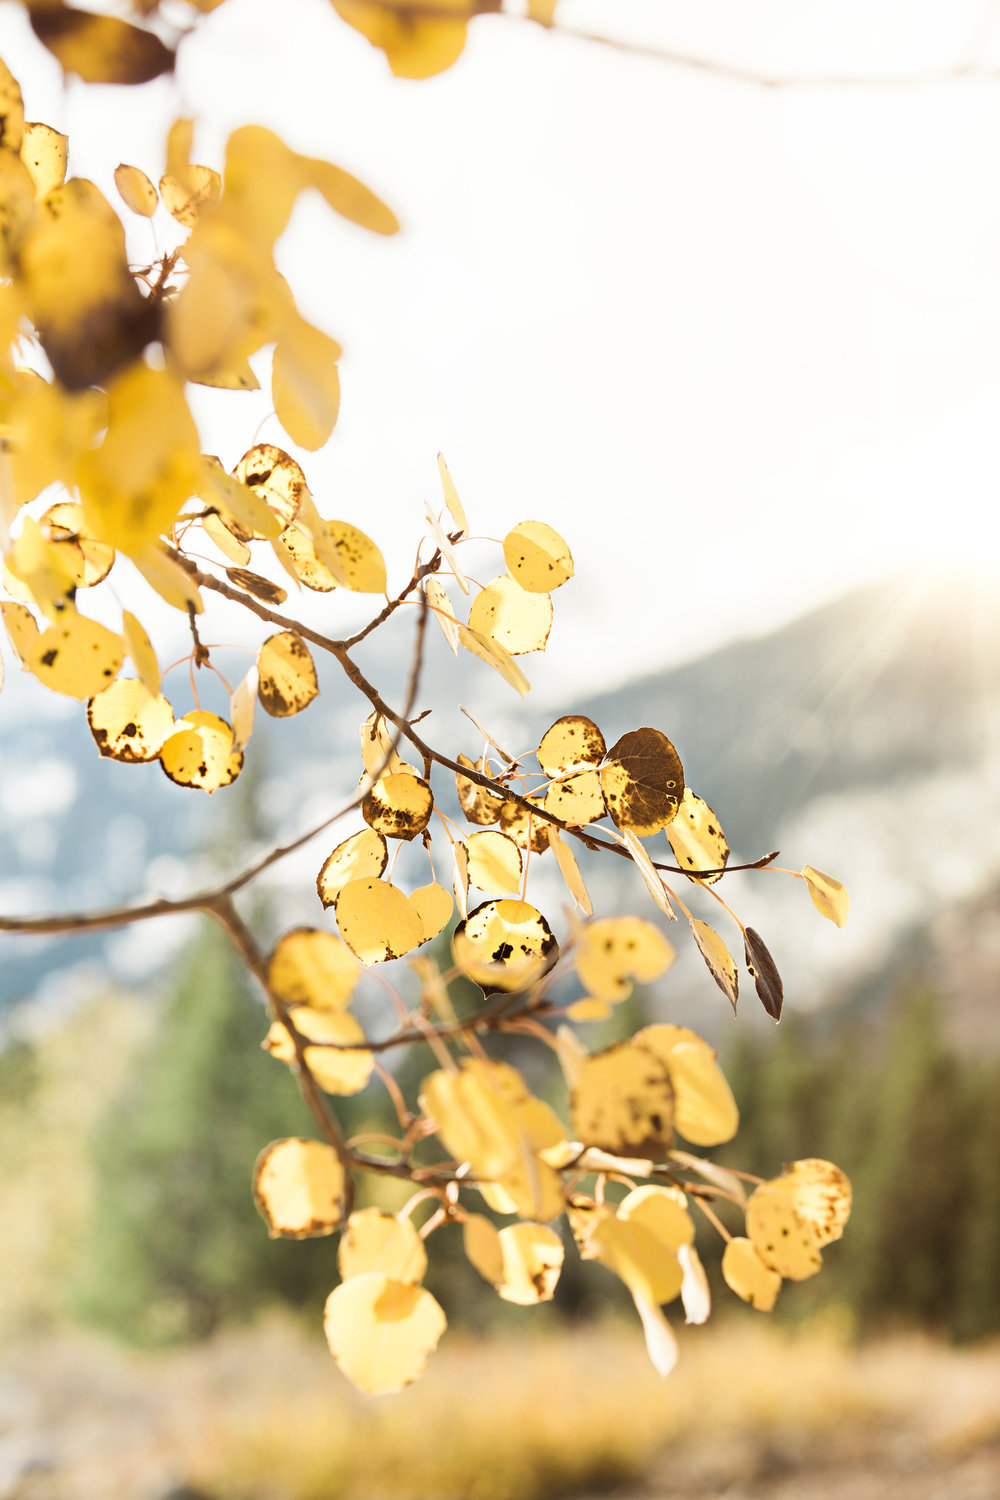 CindyGiovagnoli_Grand_Teton_National_Park_mountains_Bison_Autumn_Wyoming_Mormon_Row_aspens_fall_outdoor_photographer-012.jpg